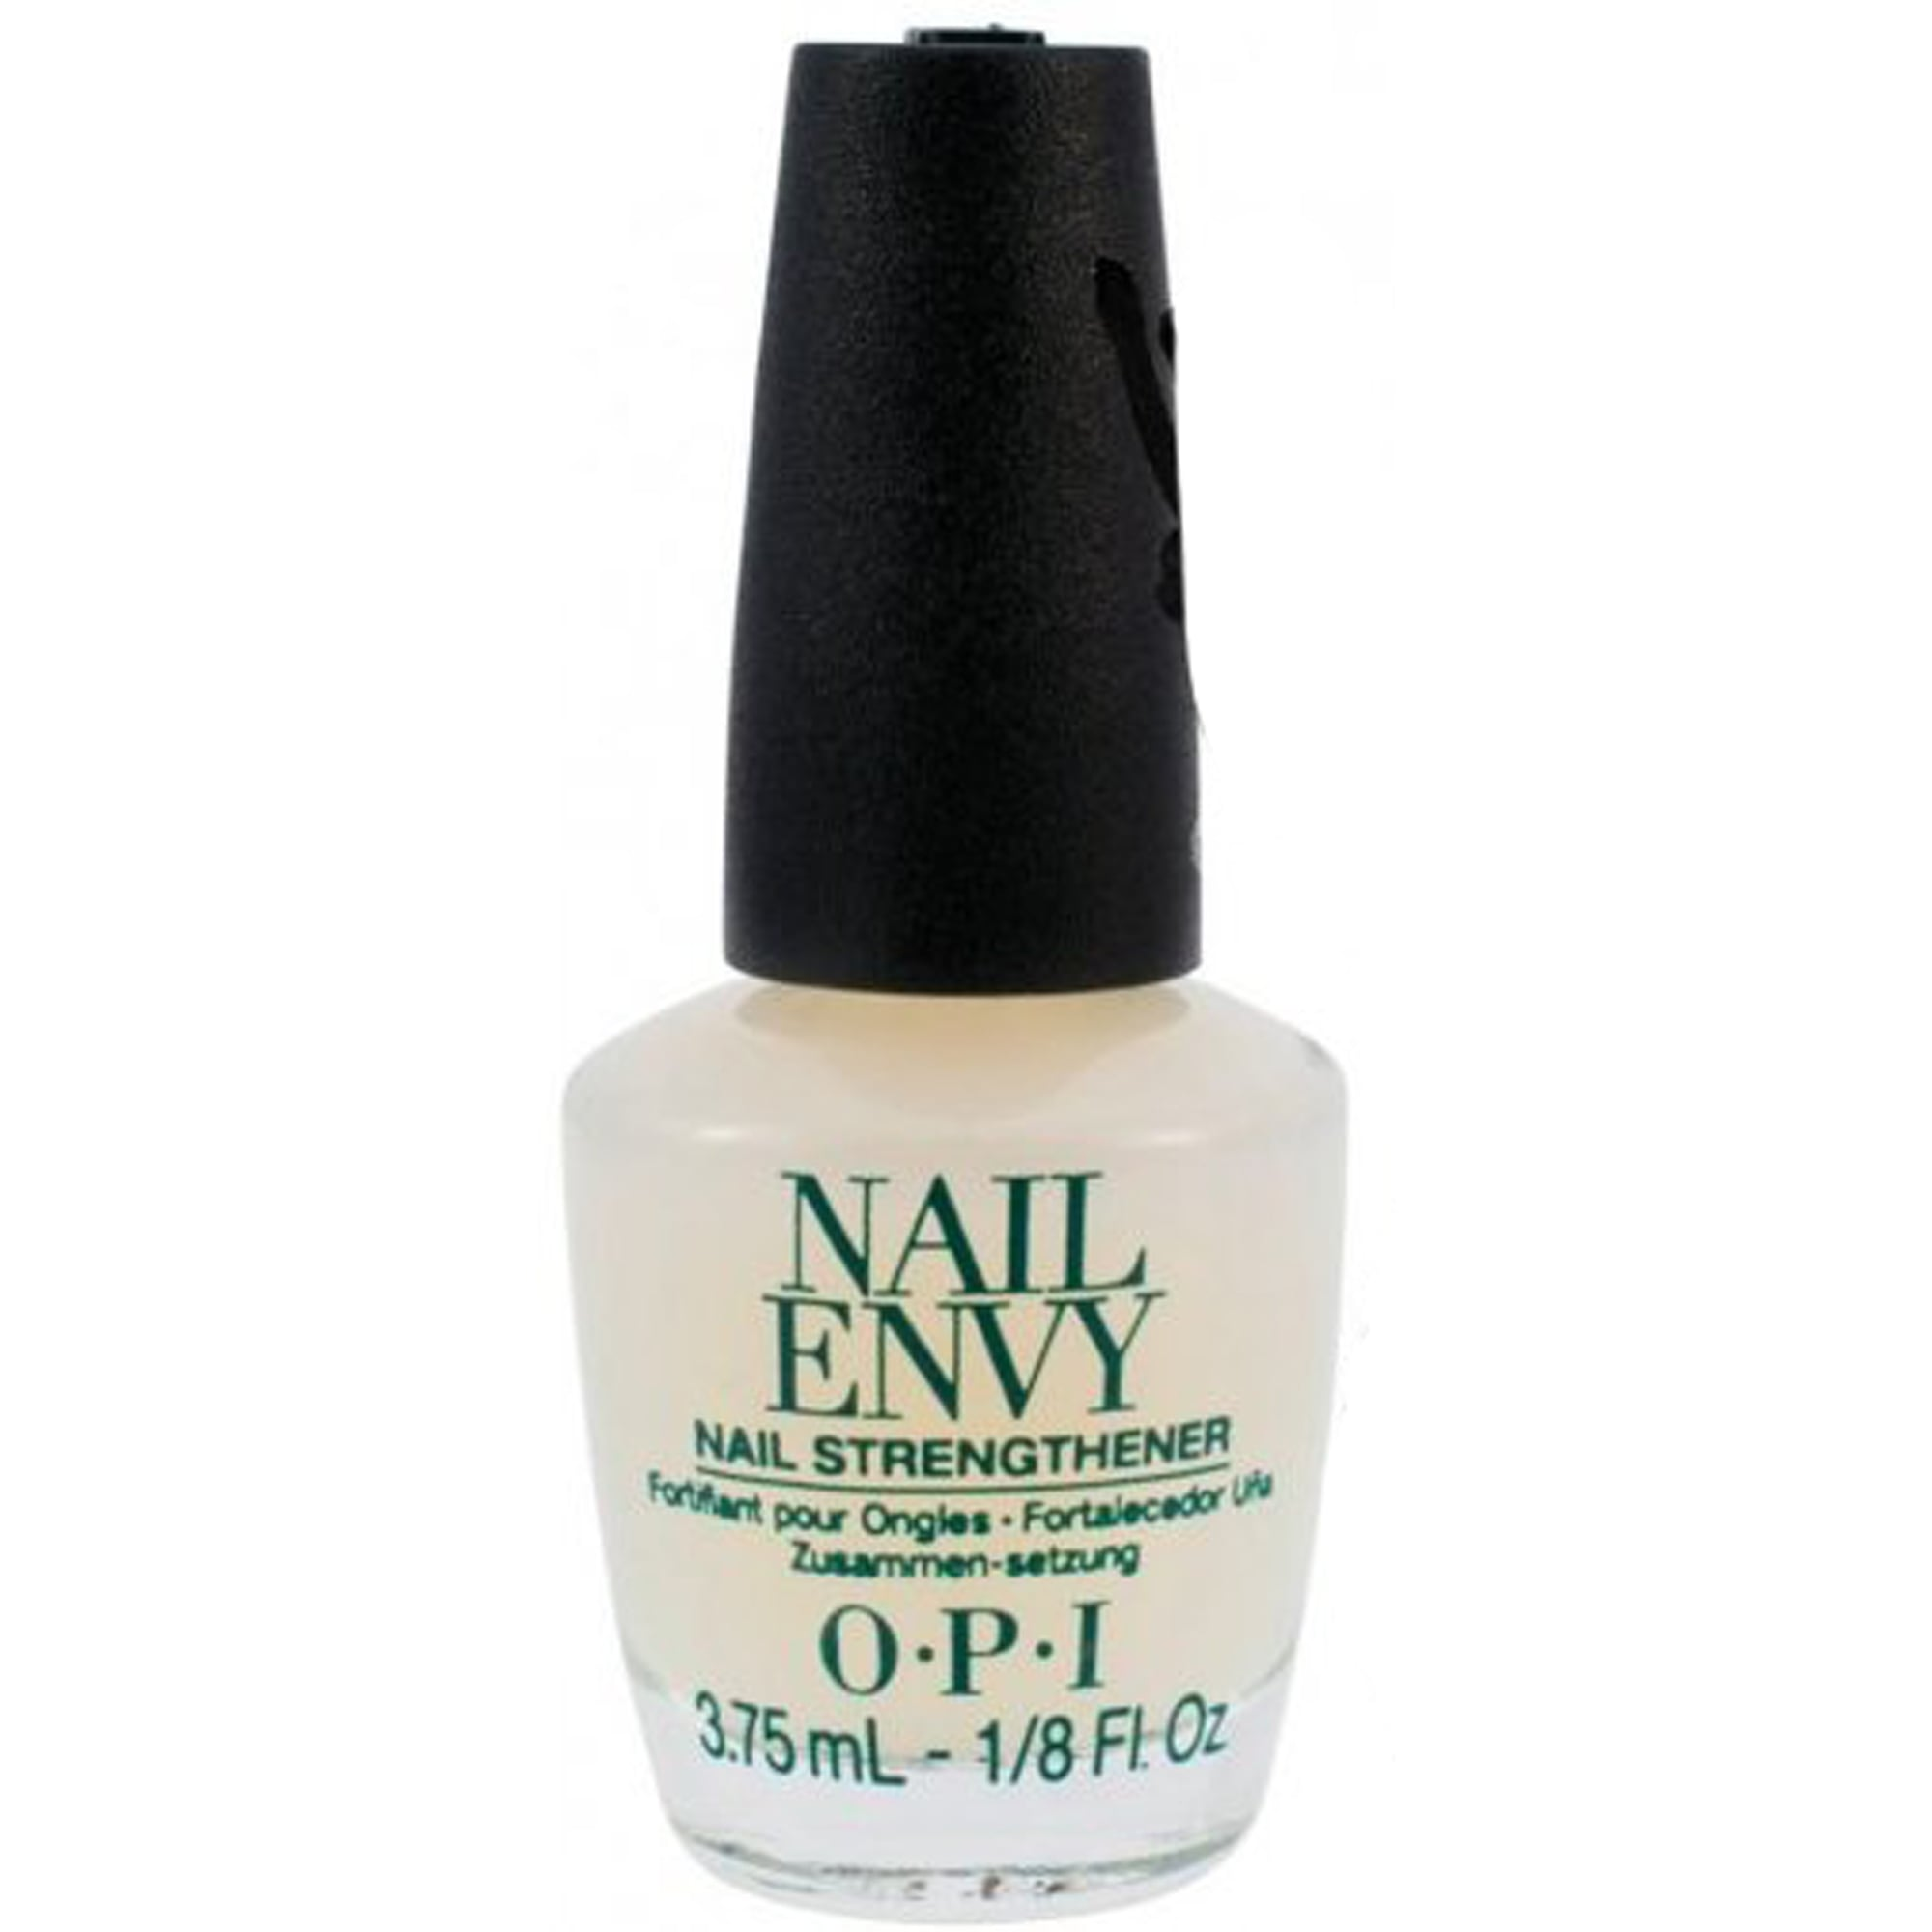 Nail Envy Mini - OPI 3.75ml